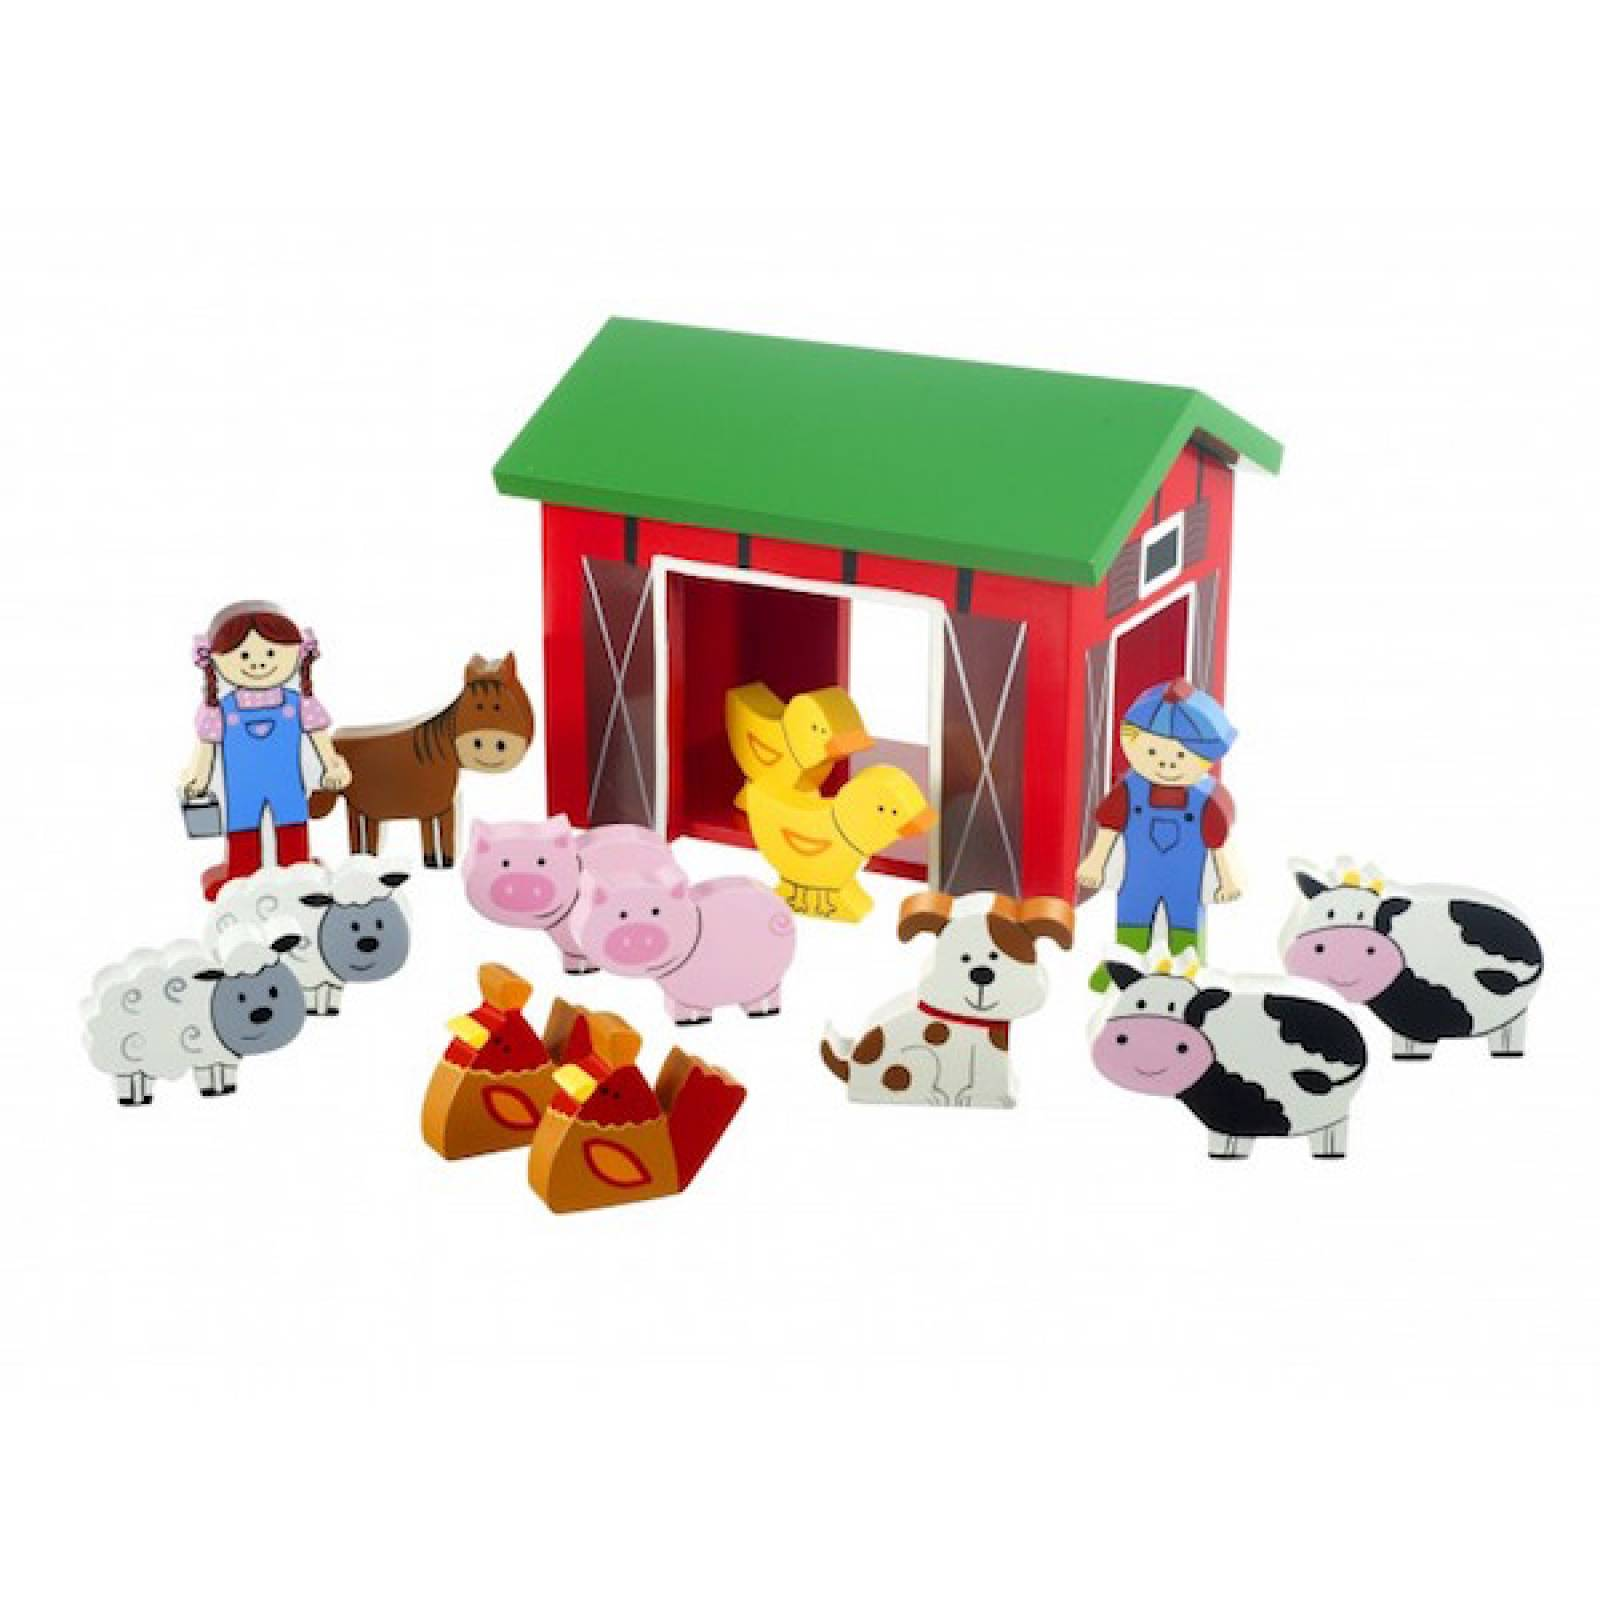 Wooden Farm Yard Play Set With Barn And Animals 1+ thumbnails